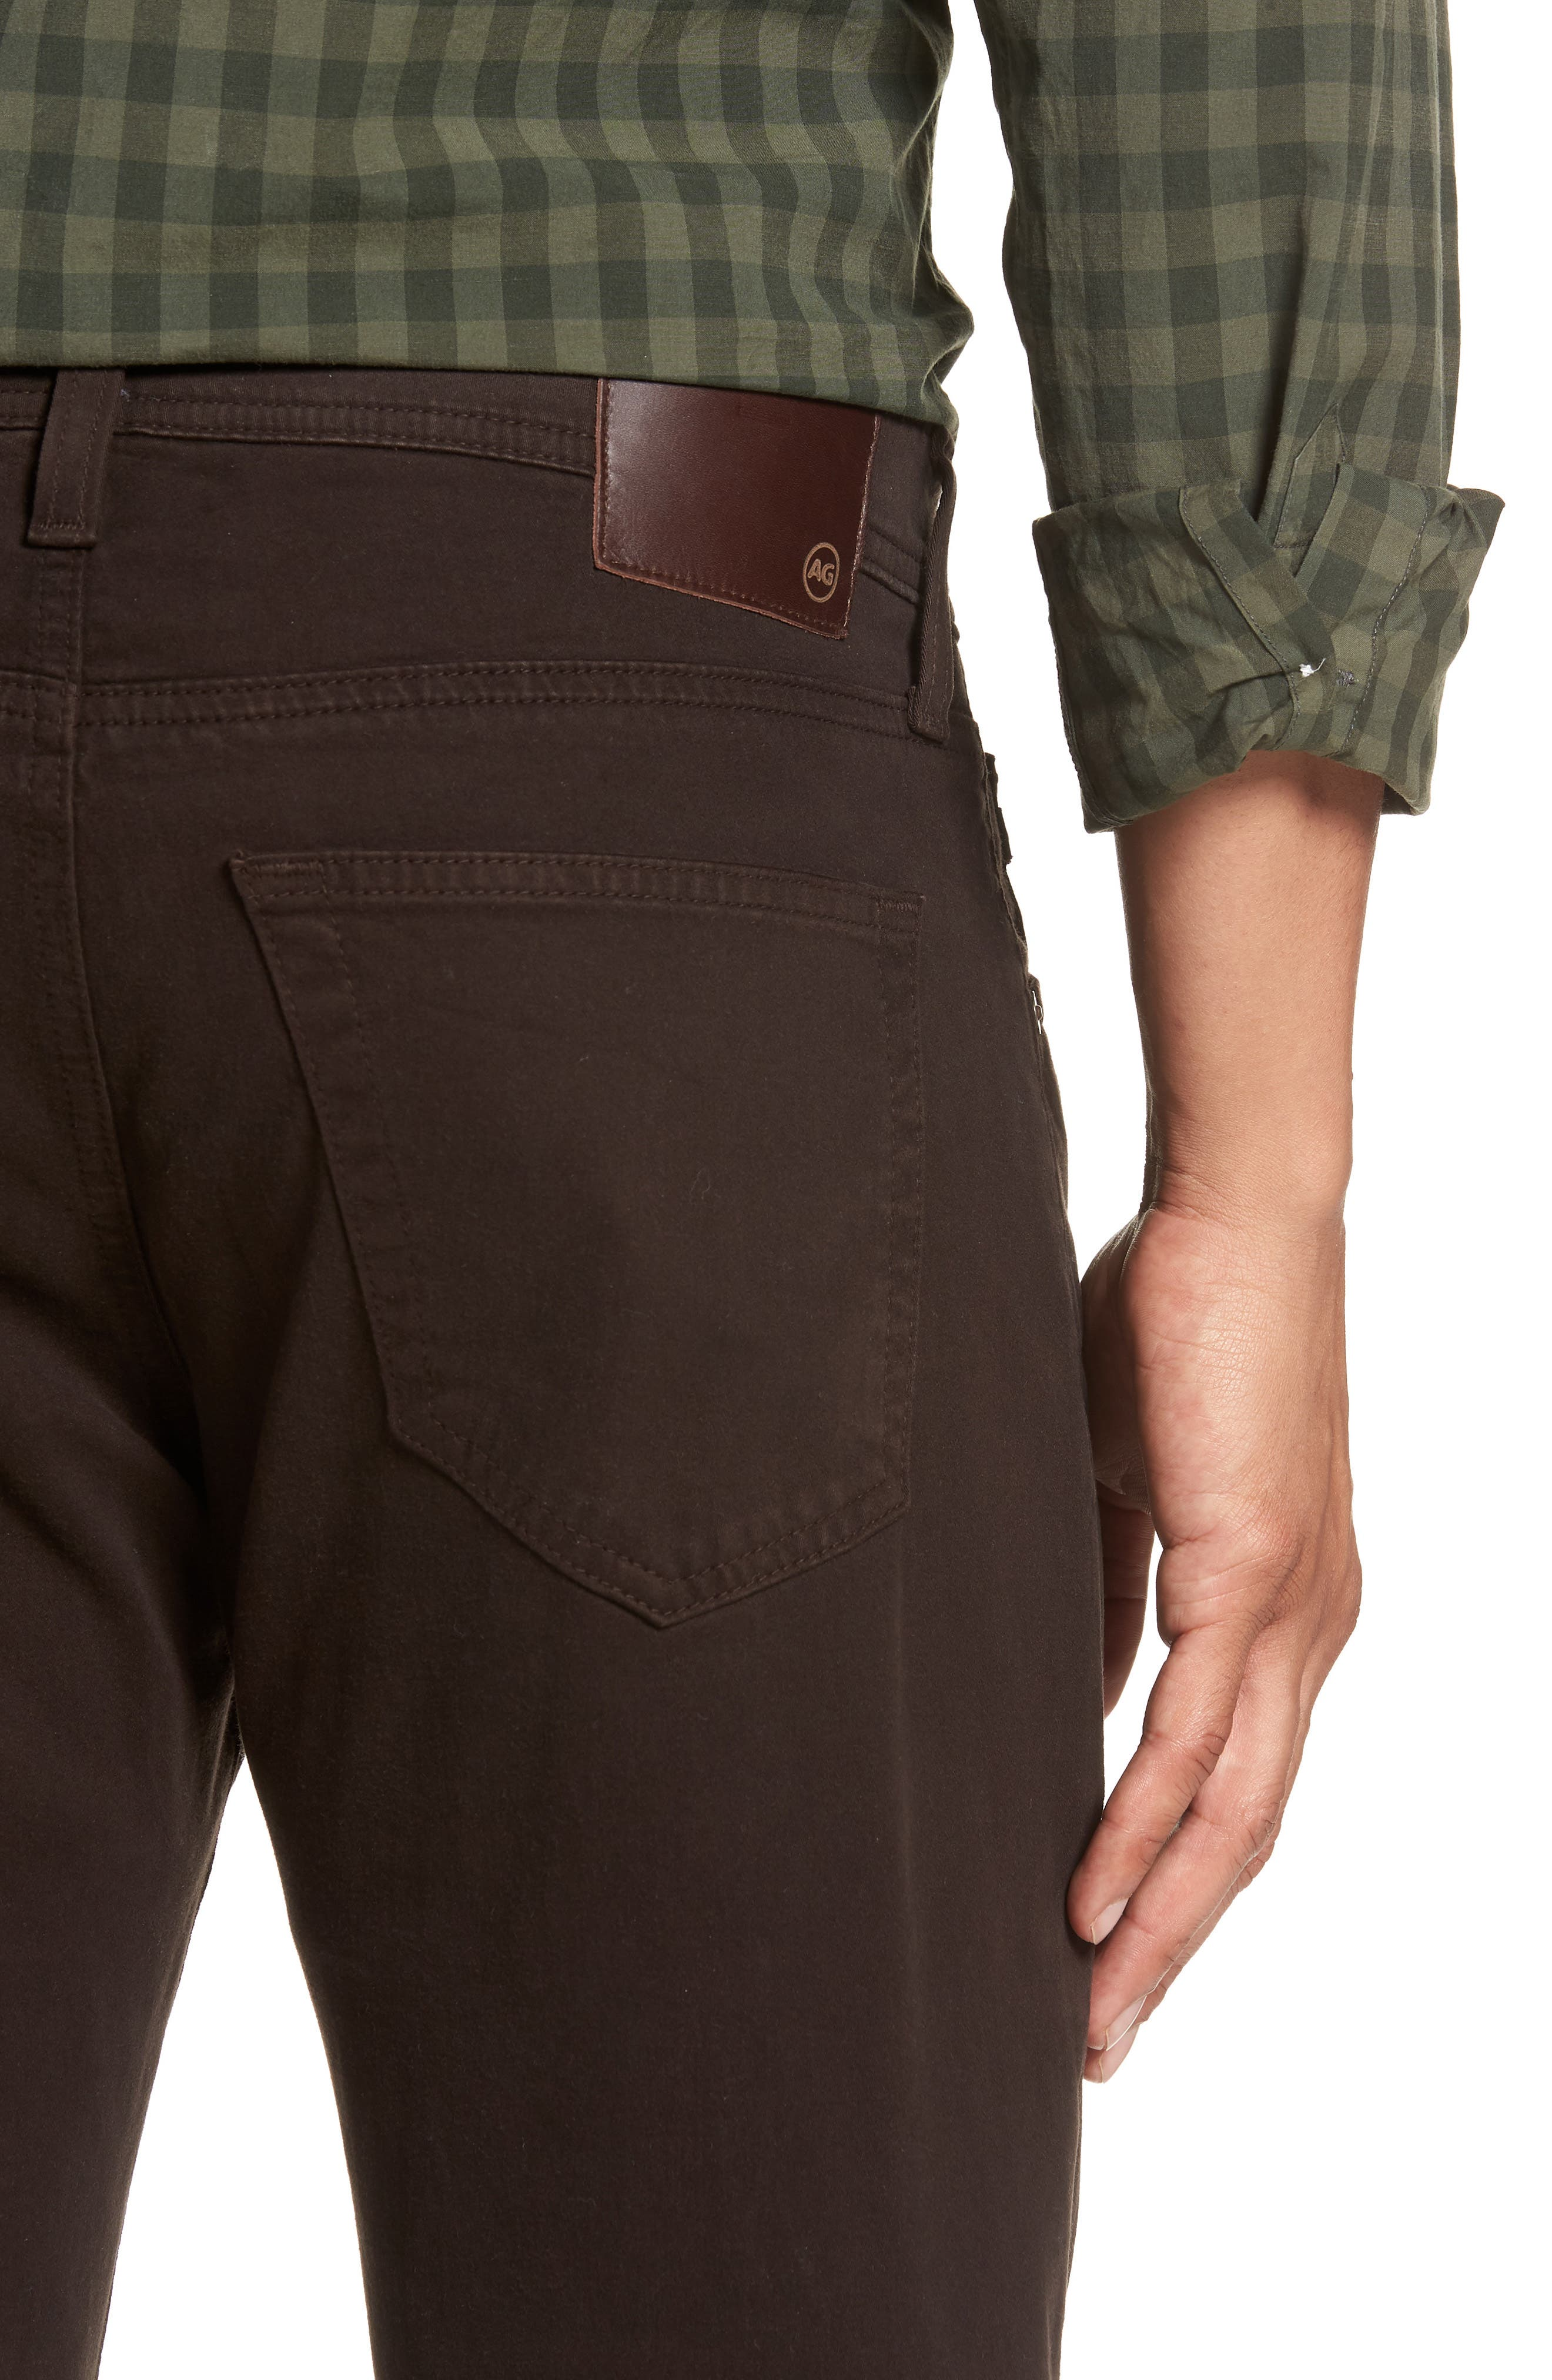 Tellis SUD Modern Slim Stretch Twill Pants,                             Alternate thumbnail 4, color,                             SHUTTER BROWN